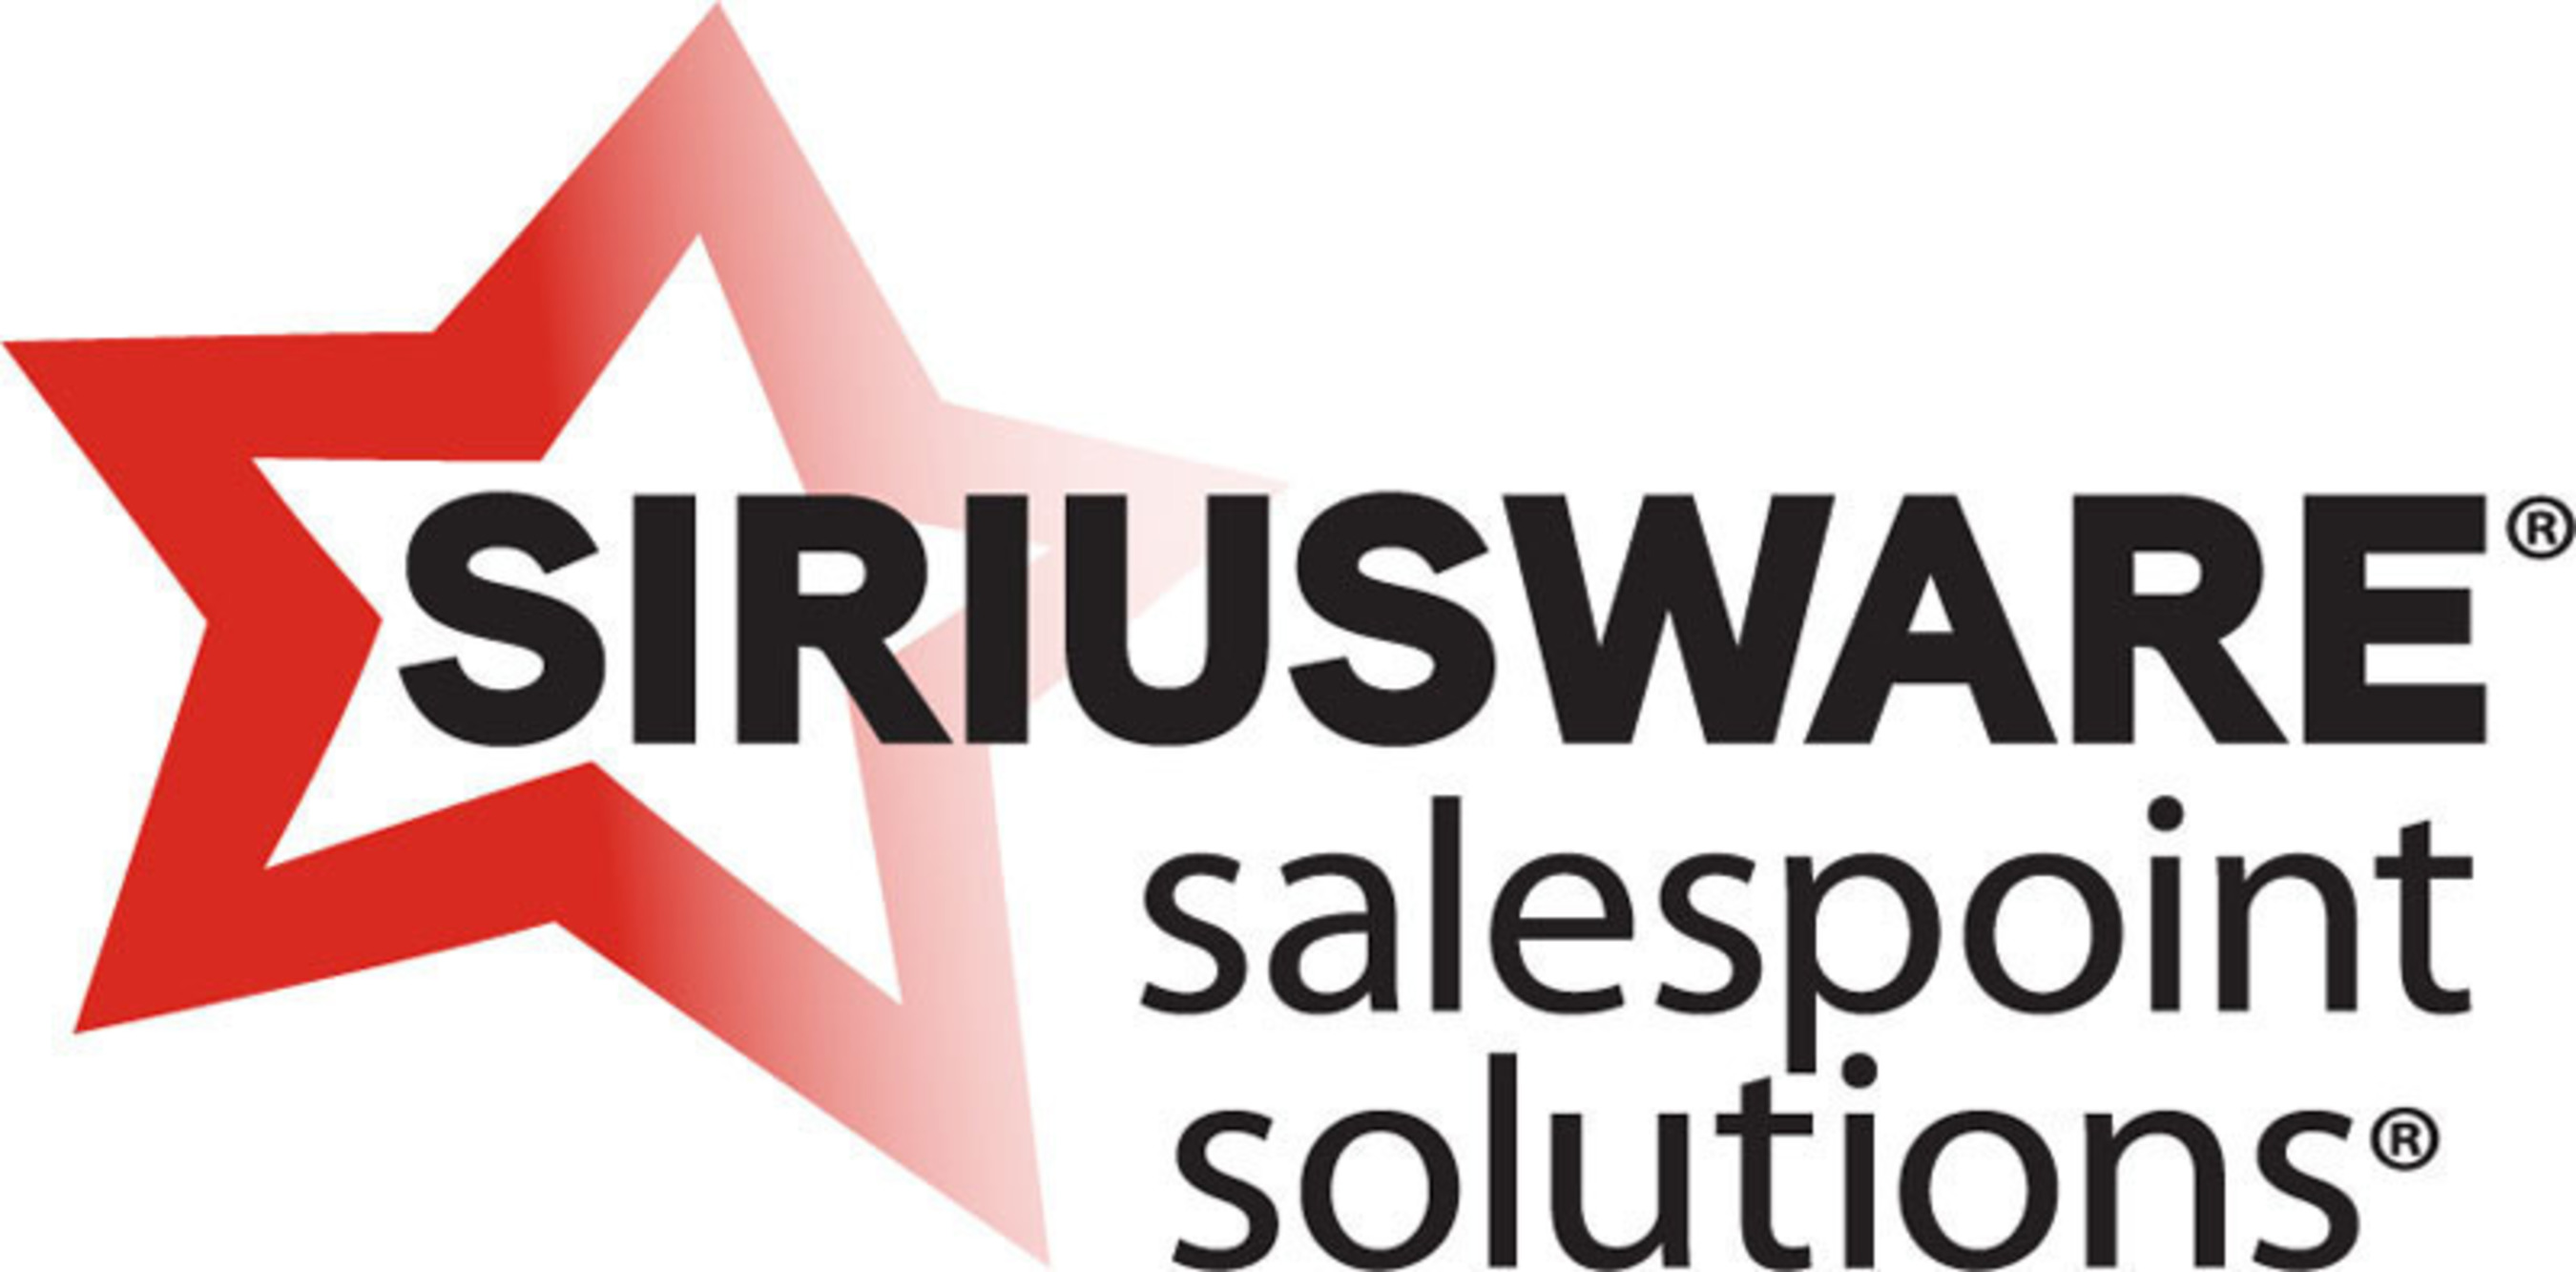 Siriusware, a leading North American provider of ticketing and point-of-sale software, hardware solutions and professional services to the ski and snowsports, and attractions sectors, has been acquired by accesso Technology Group (AIM: ACSO). (PRNewsFoto/accesso) (PRNewsFoto/ACCESSO)